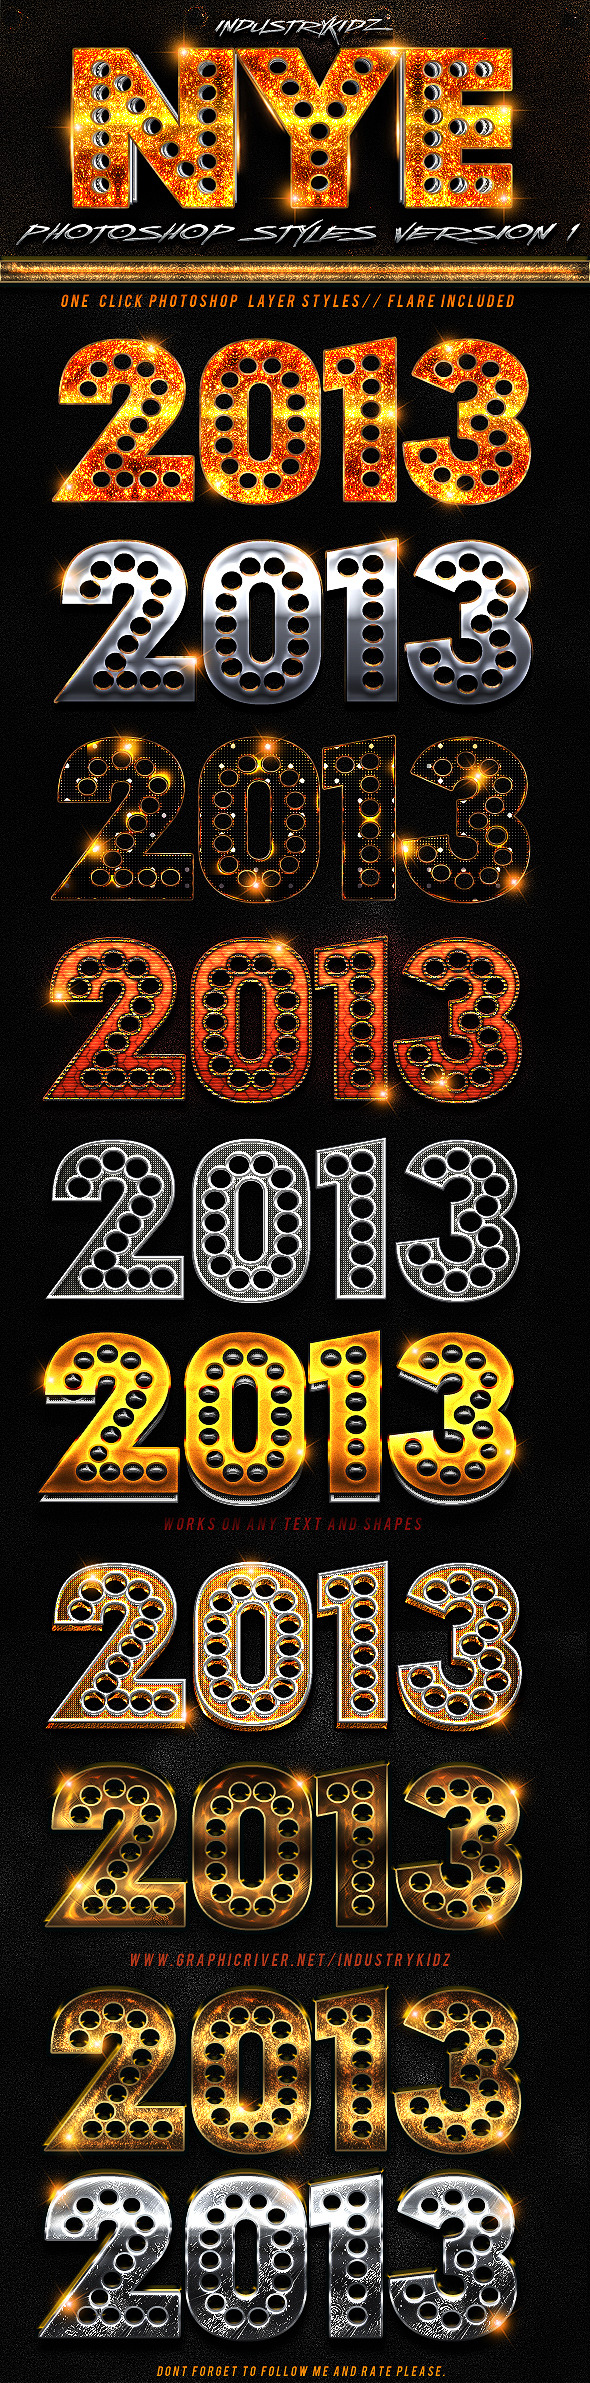 New Year Photoshop Styles  - Styles Photoshop